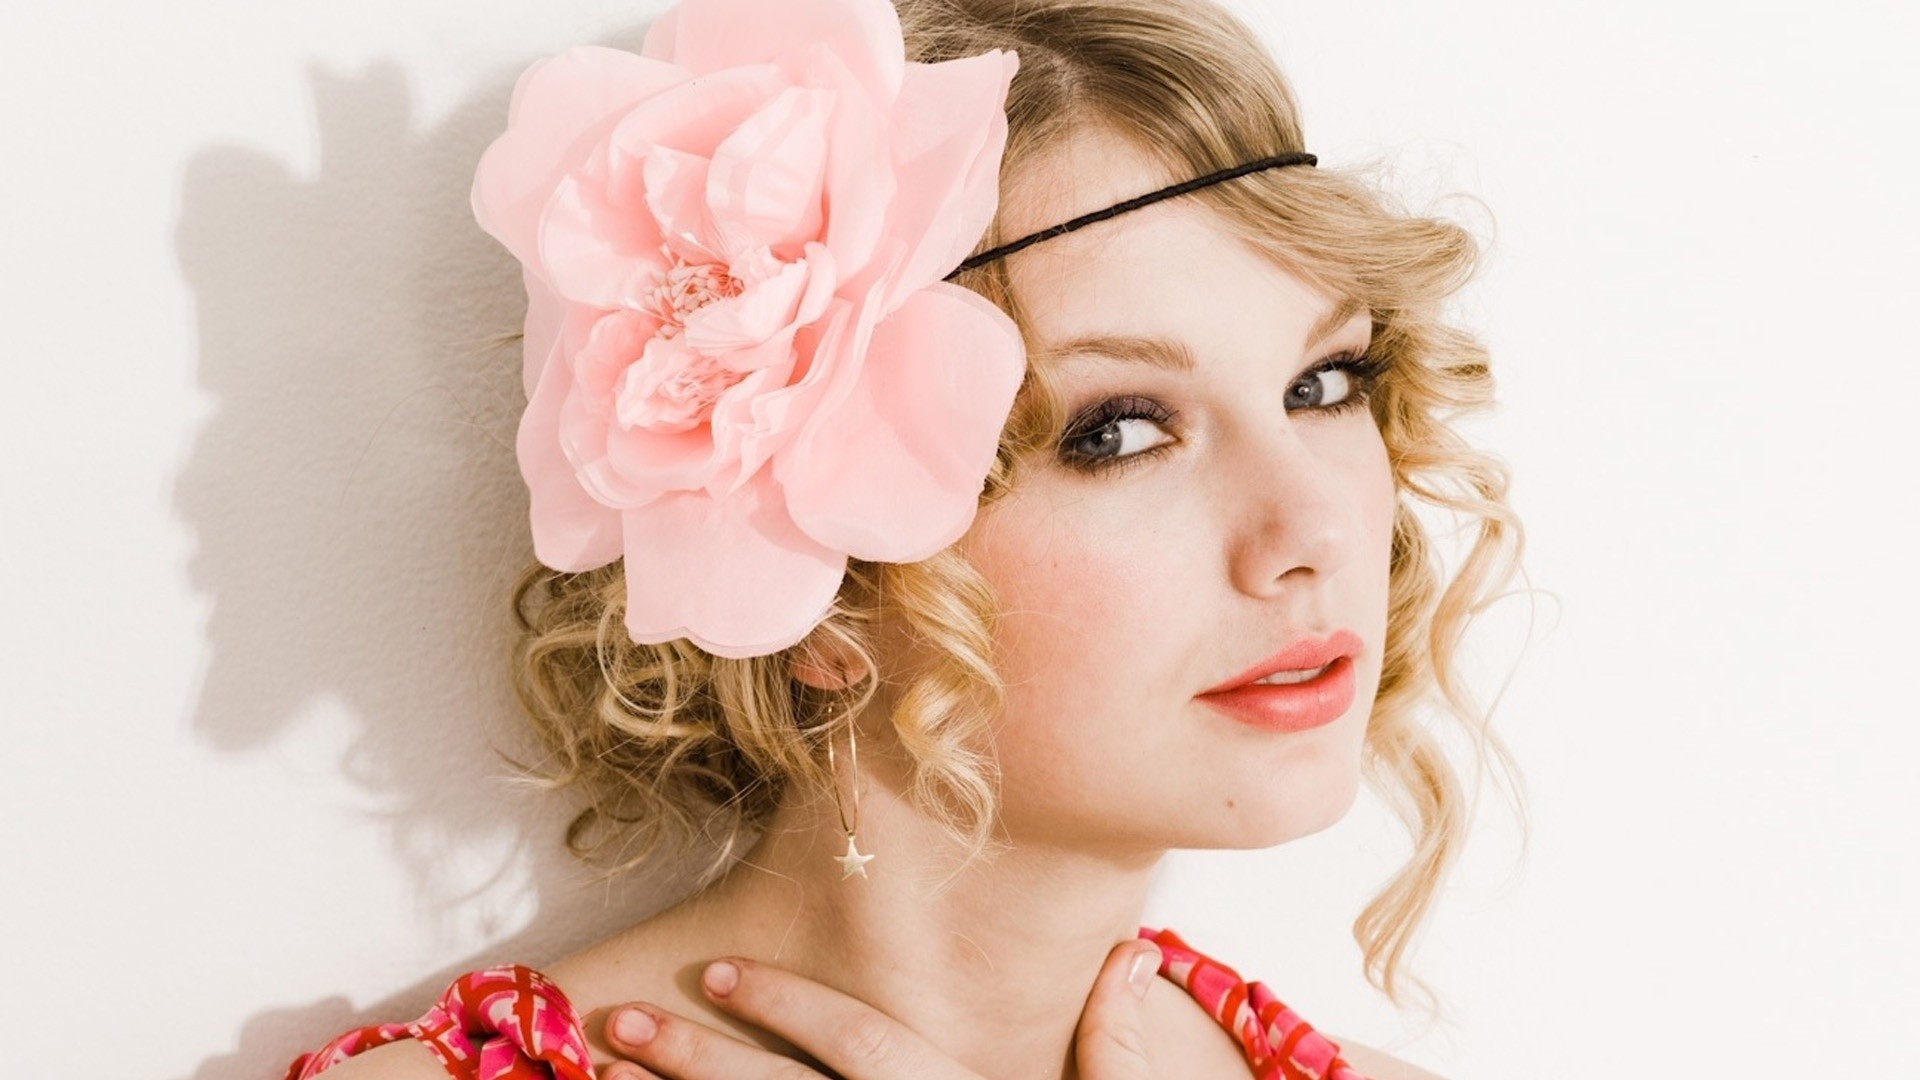 blondes woman Flowers taylor